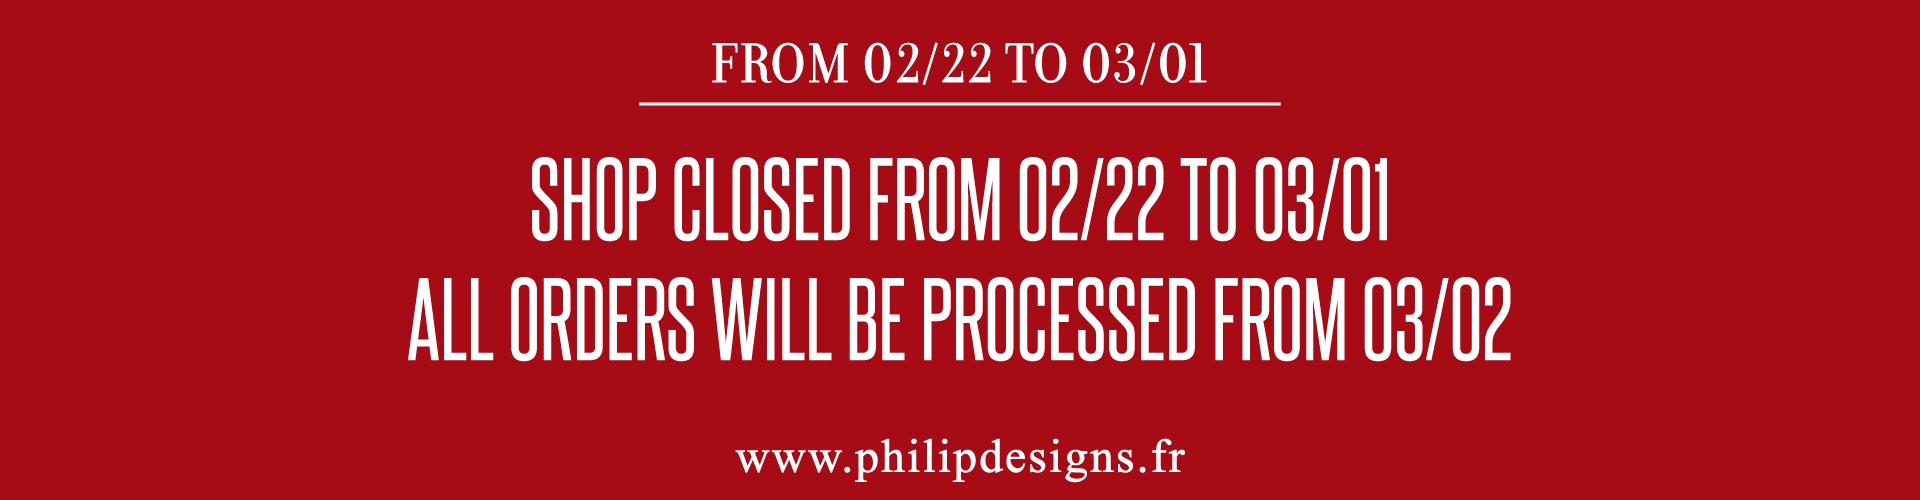 Shop closed from 02/22 to 03/01, all orders will be processed from 03/02